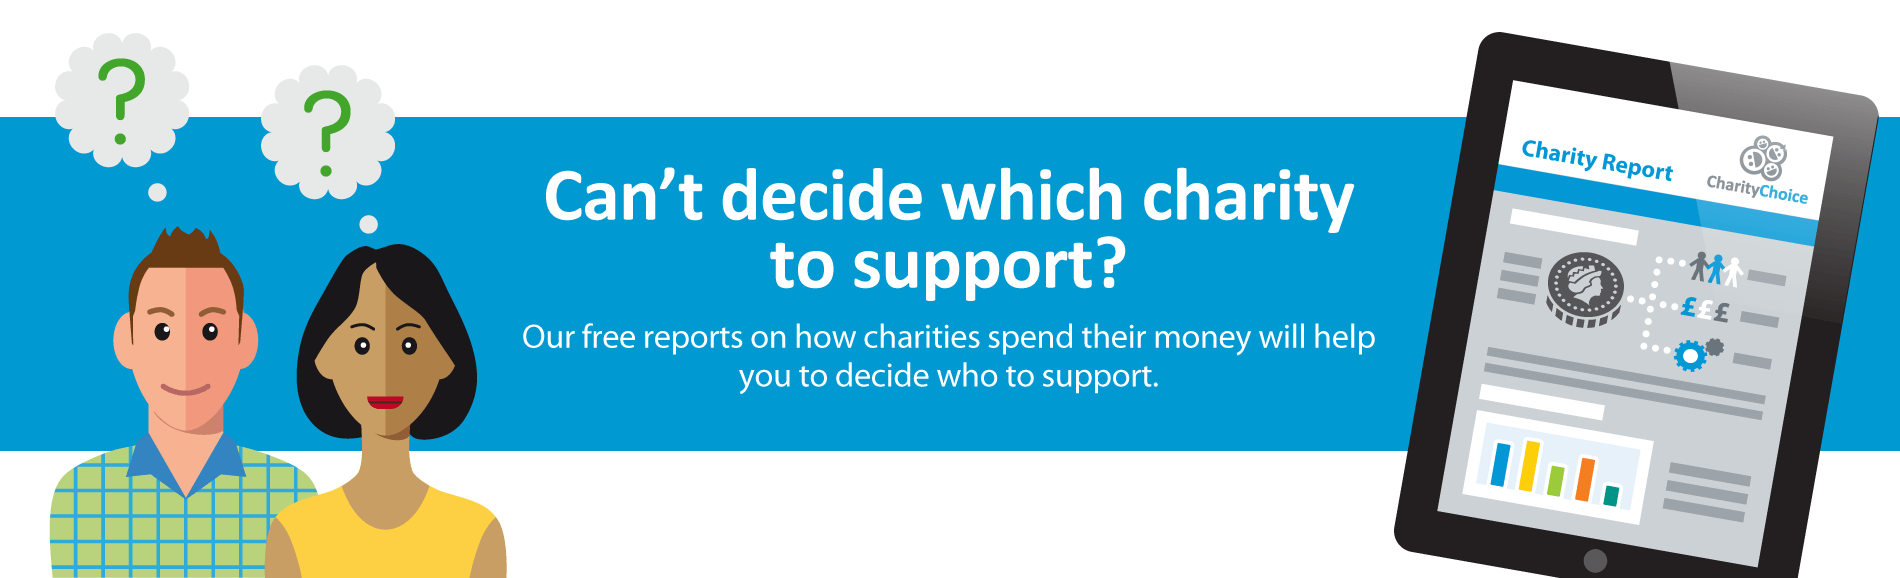 Can't decide which charity to support? Try our reports